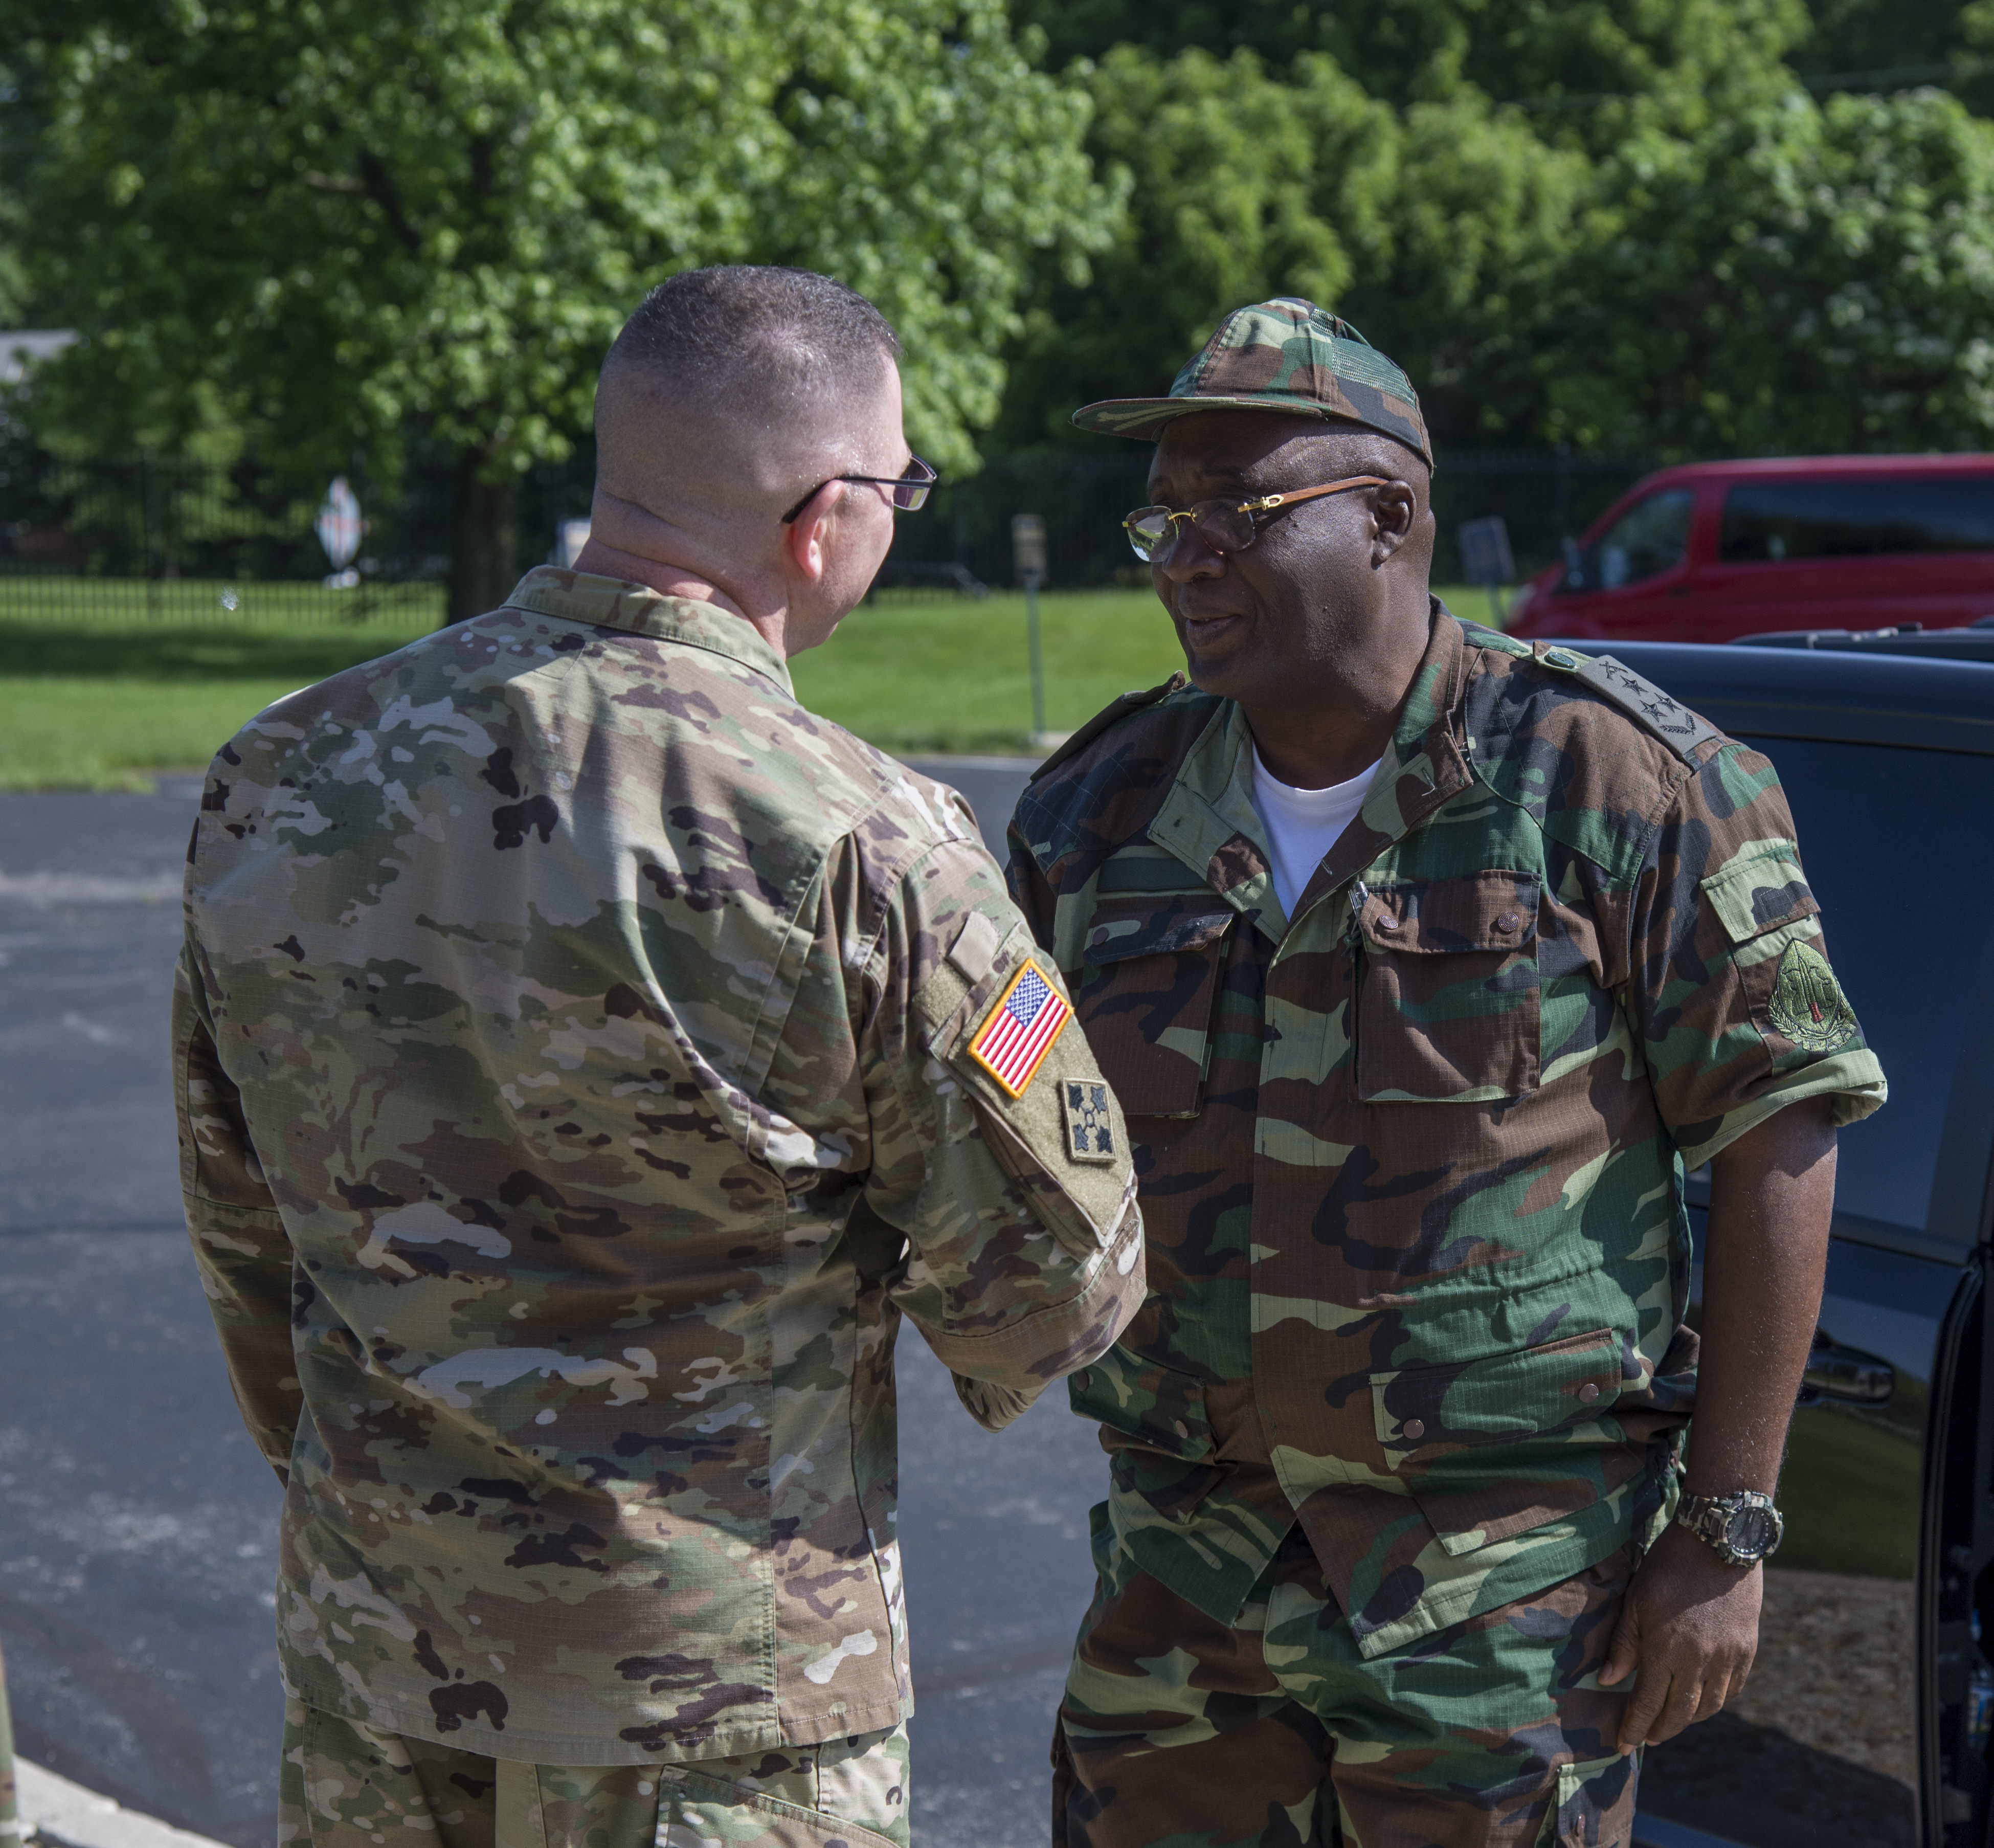 Col. Daniel Shank (left), Ohio assistant adjutant general for Army, greets Gen. Jaques Raul, deputy land forces commander of the Angolan Armed Forces, as his delegation arrives at the Maj. Gen. Robert S. Beightler Armory in Columbus, Ohio, June 4, 2019. The State Partnership Program organized the visit, which enabled meetings and discussions between Angolan military and Ohio National Guard leadership.